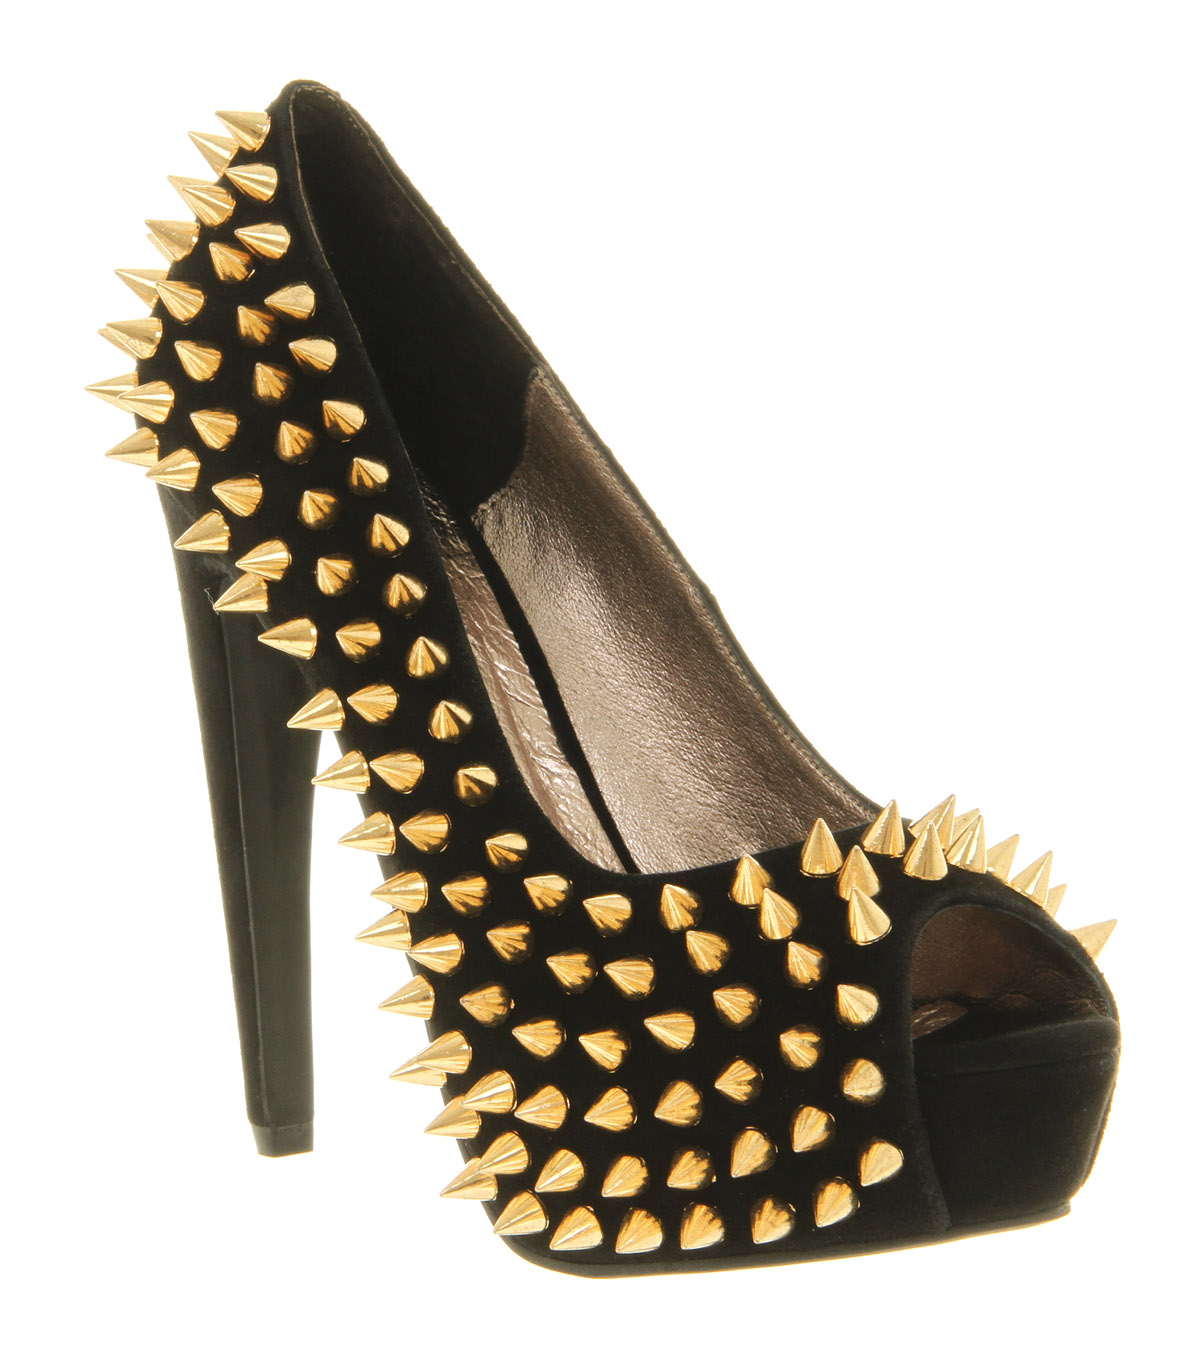 Womens-Jeffrey-Campbell-During-Spike-High-Heel-BLACK-SUEDE-GOLD-SPIKES-Heels